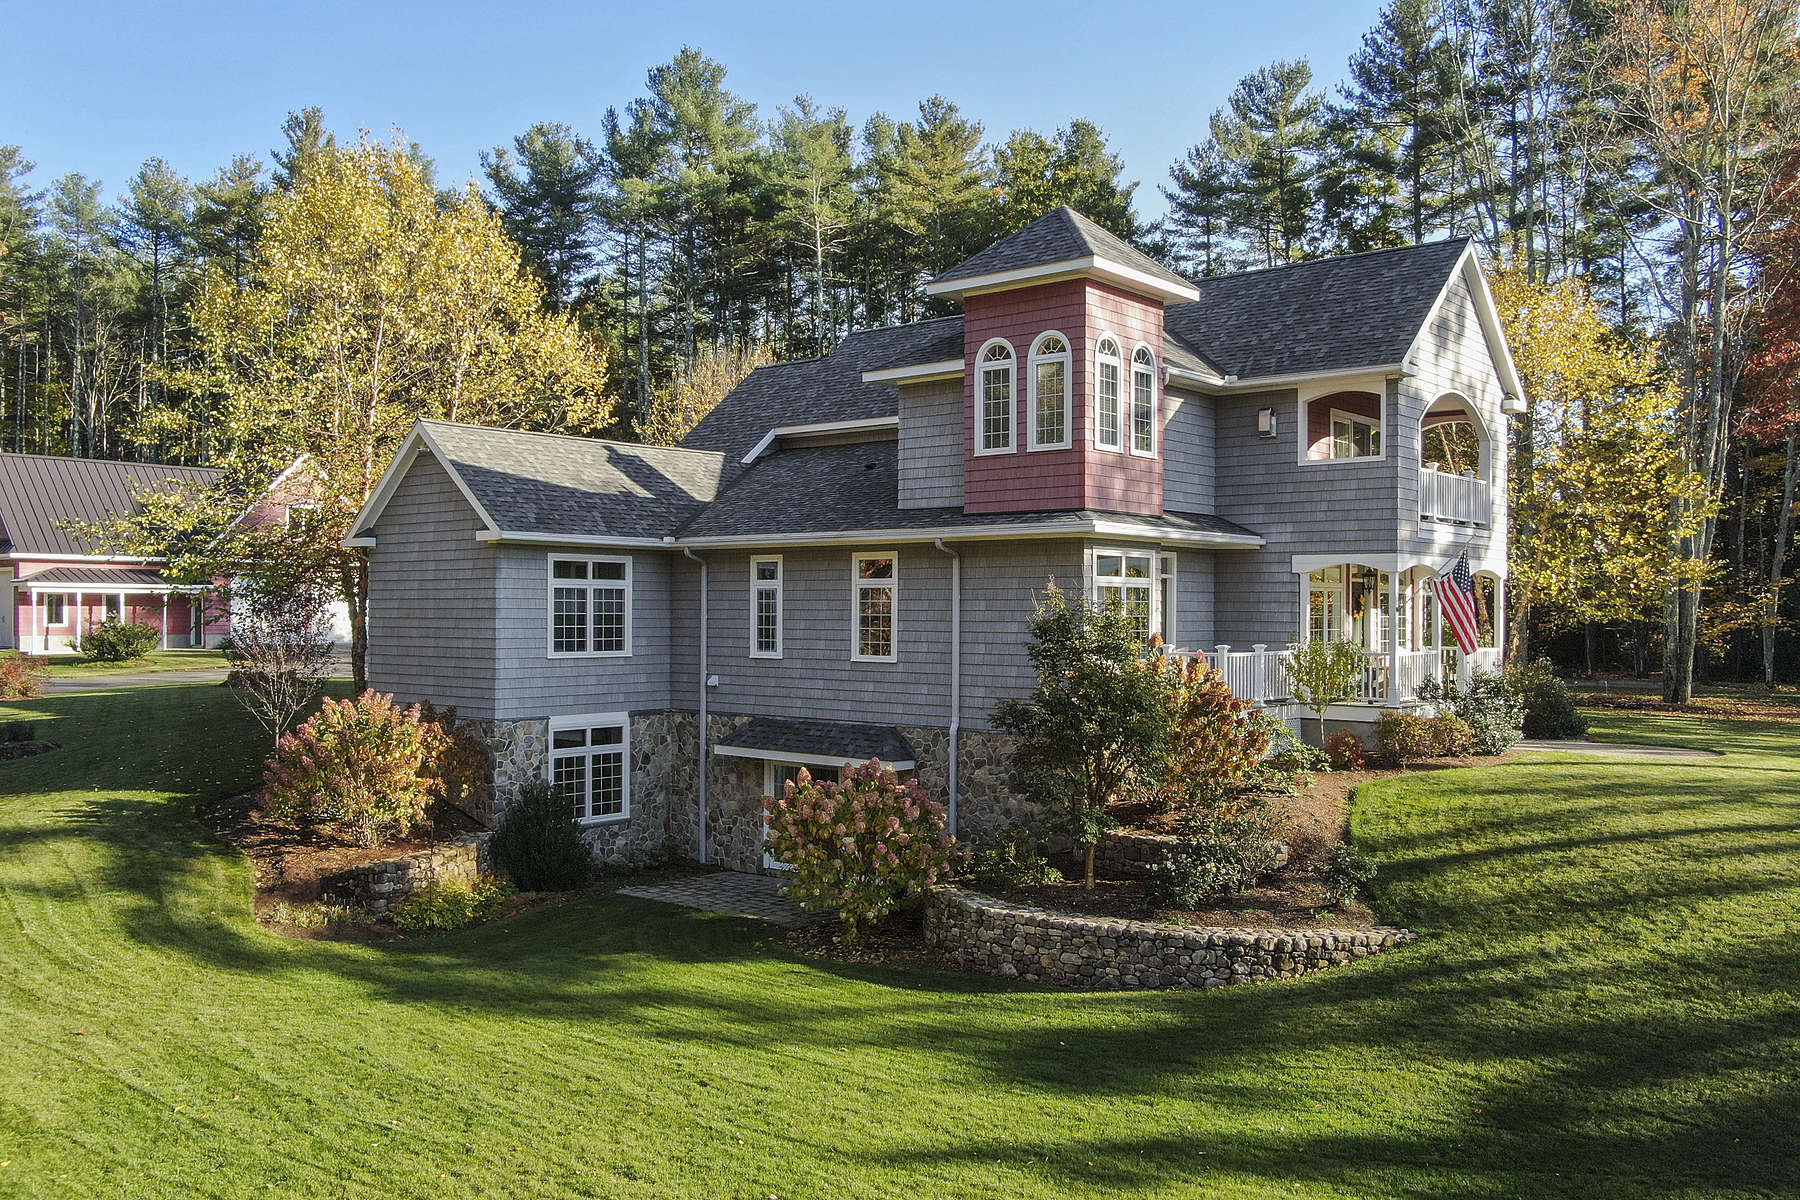 Single Family Homes for Sale at 167 Federal Hill Road, Hollis 167 Federal Hill Rd Hollis, New Hampshire 03049 United States